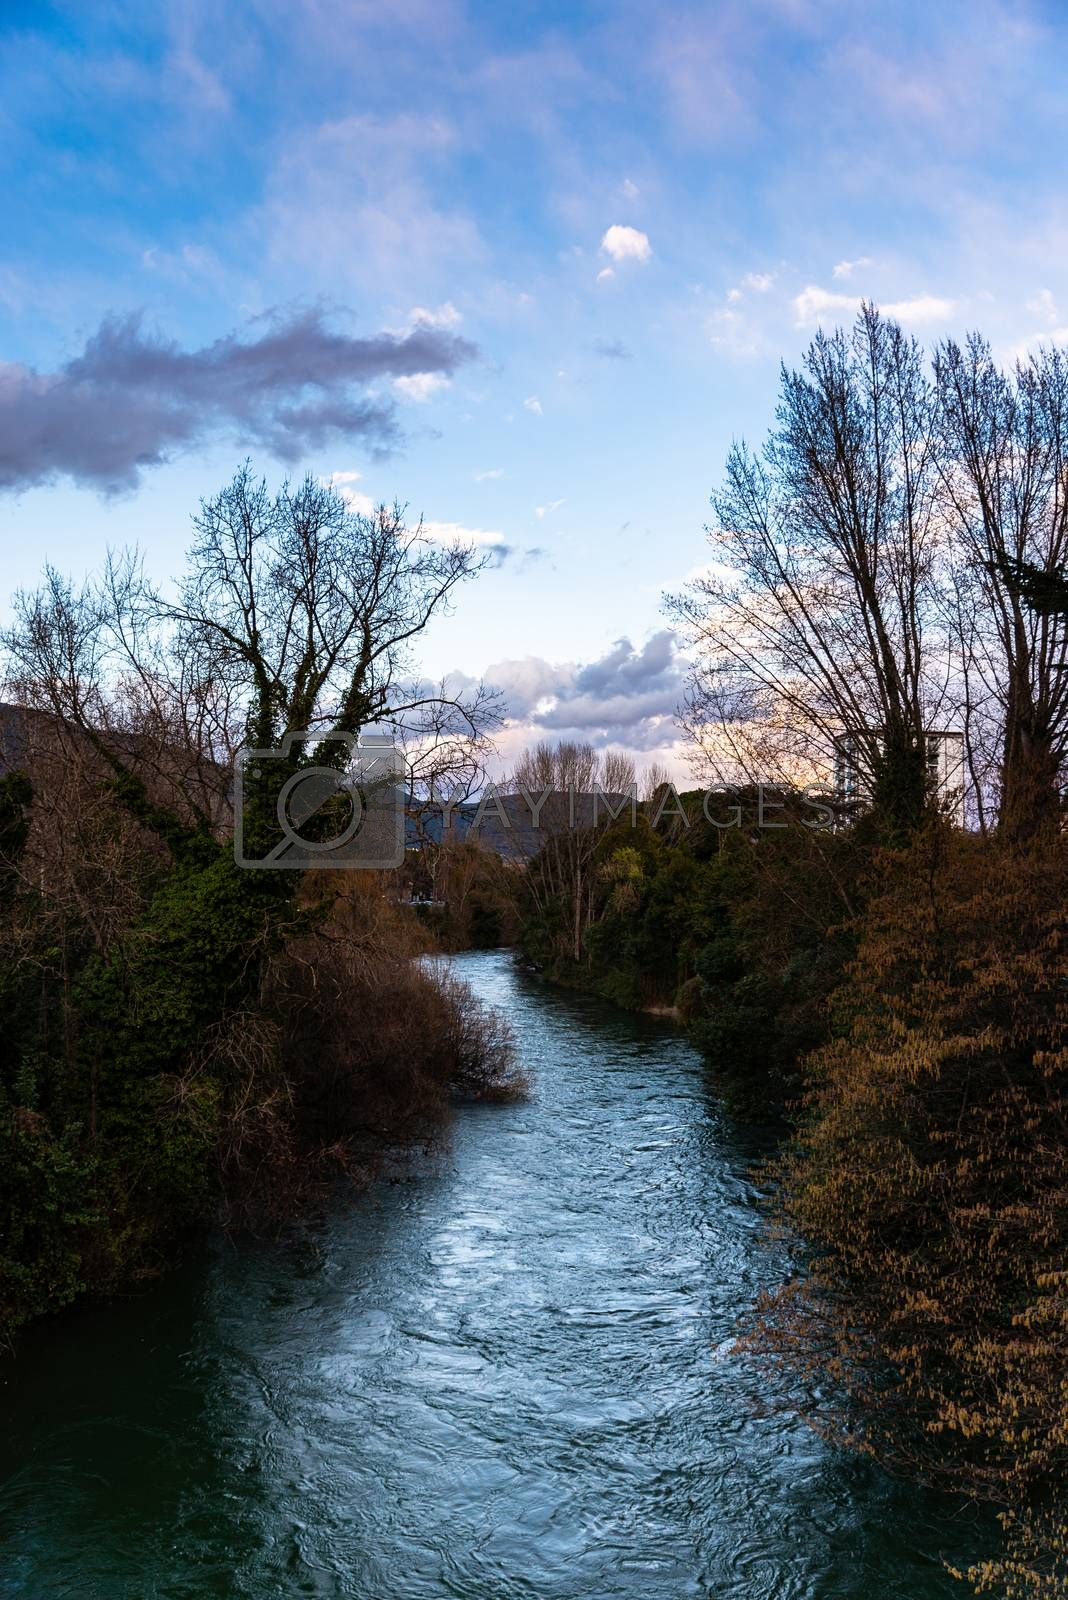 Royalty free image of BLACK RIVER by carfedeph